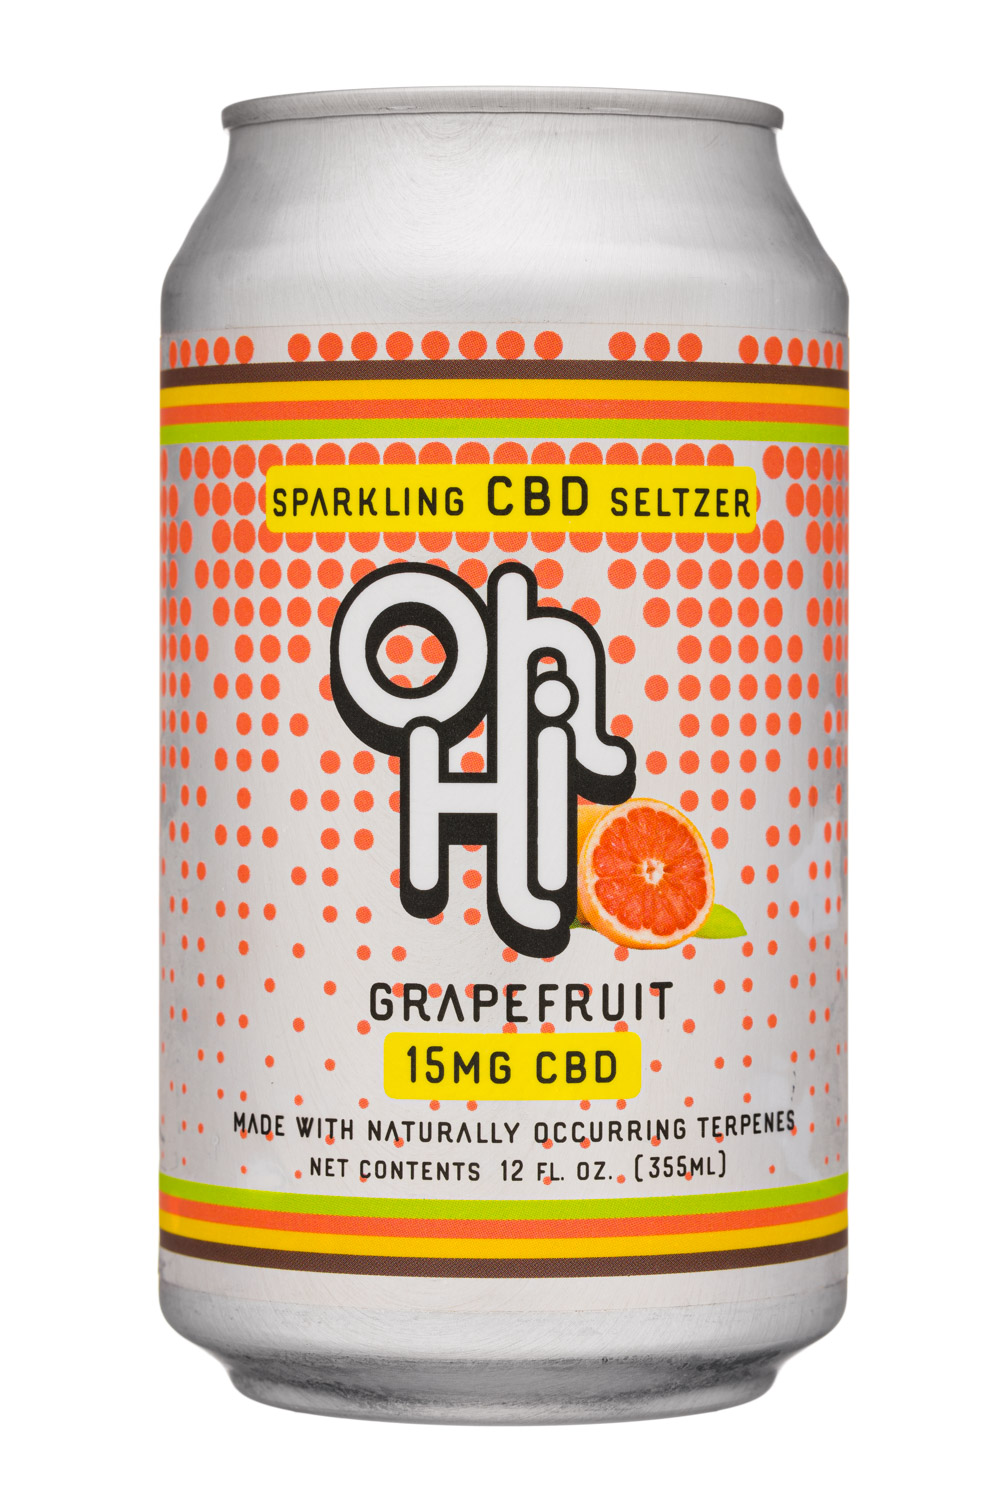 Grapefruit CBD 15mg